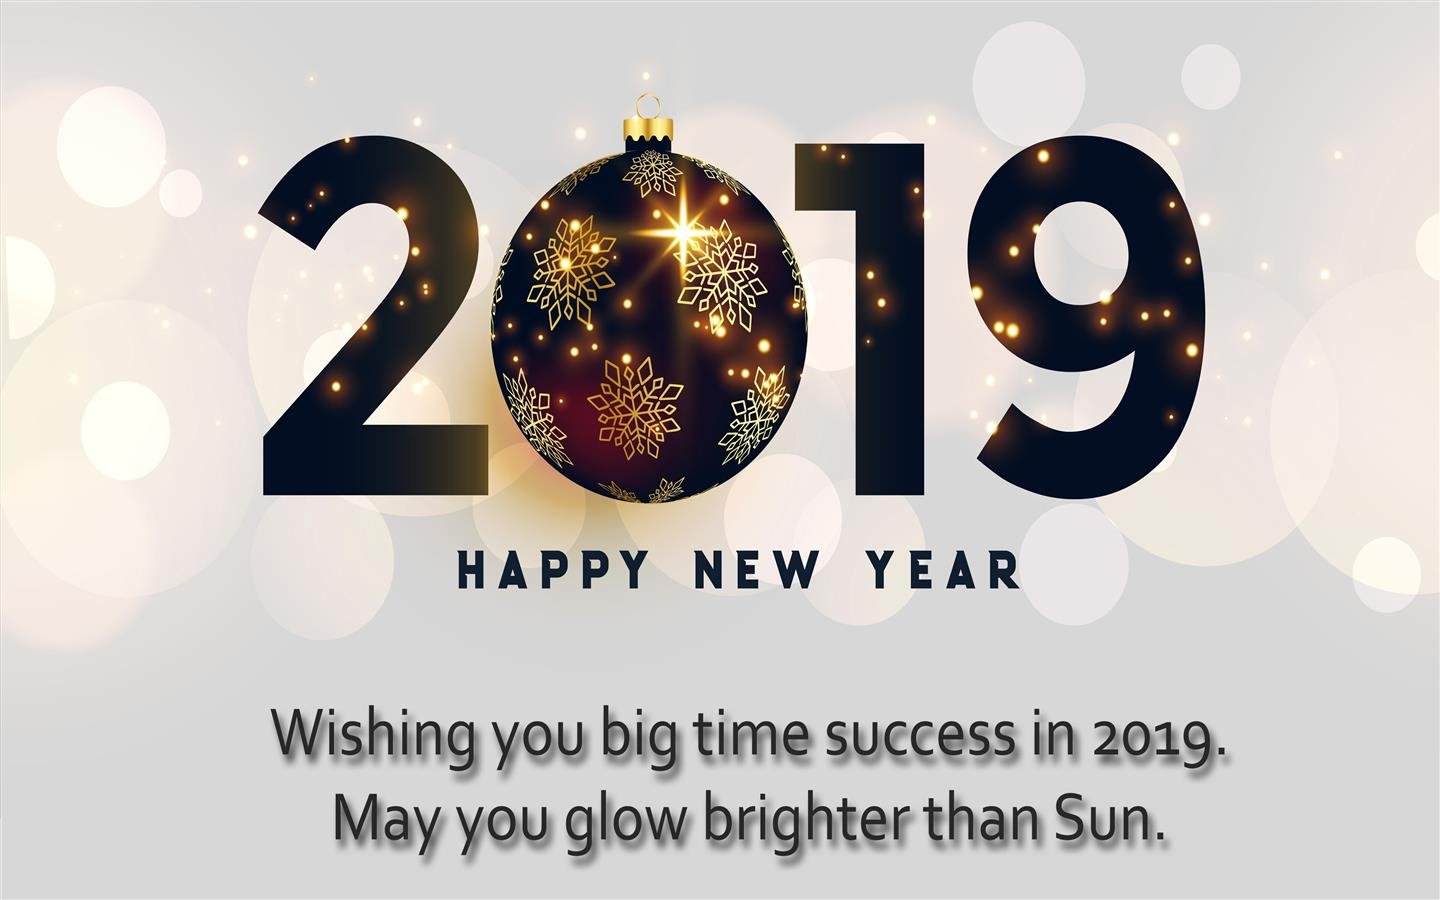 1440x900 2019 Happy New Year Greeting Message 4K Wallpaper